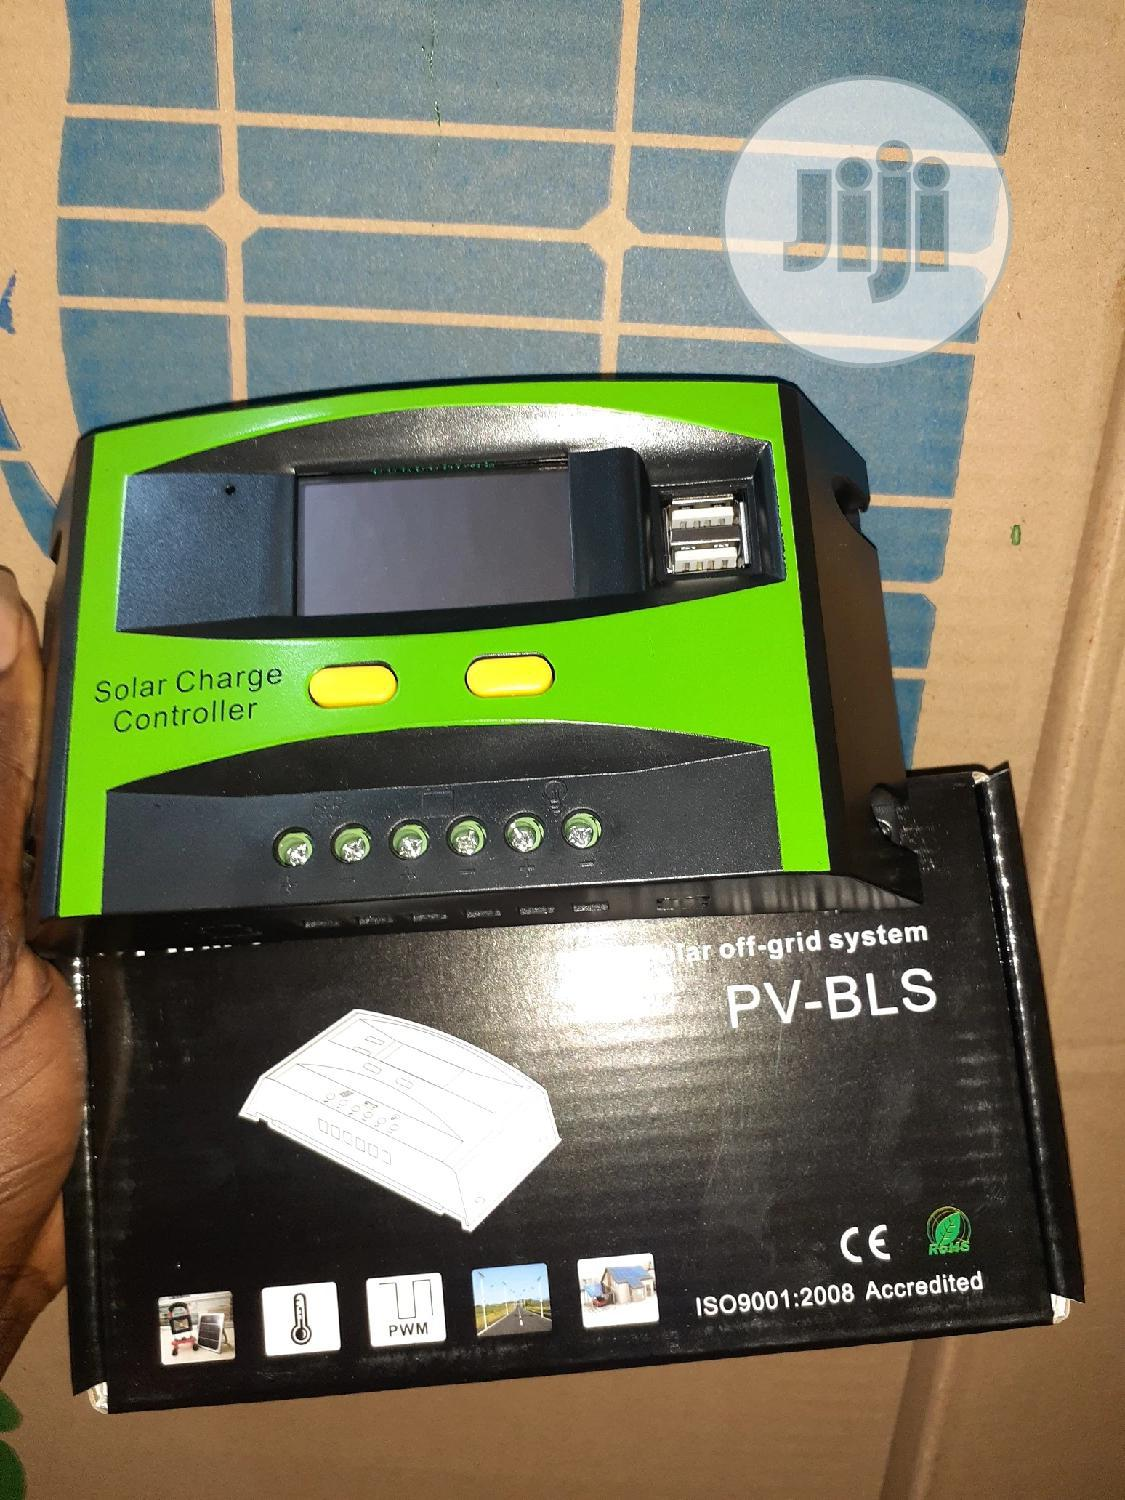 30ah Pwm Solar Charge Controller Is Available